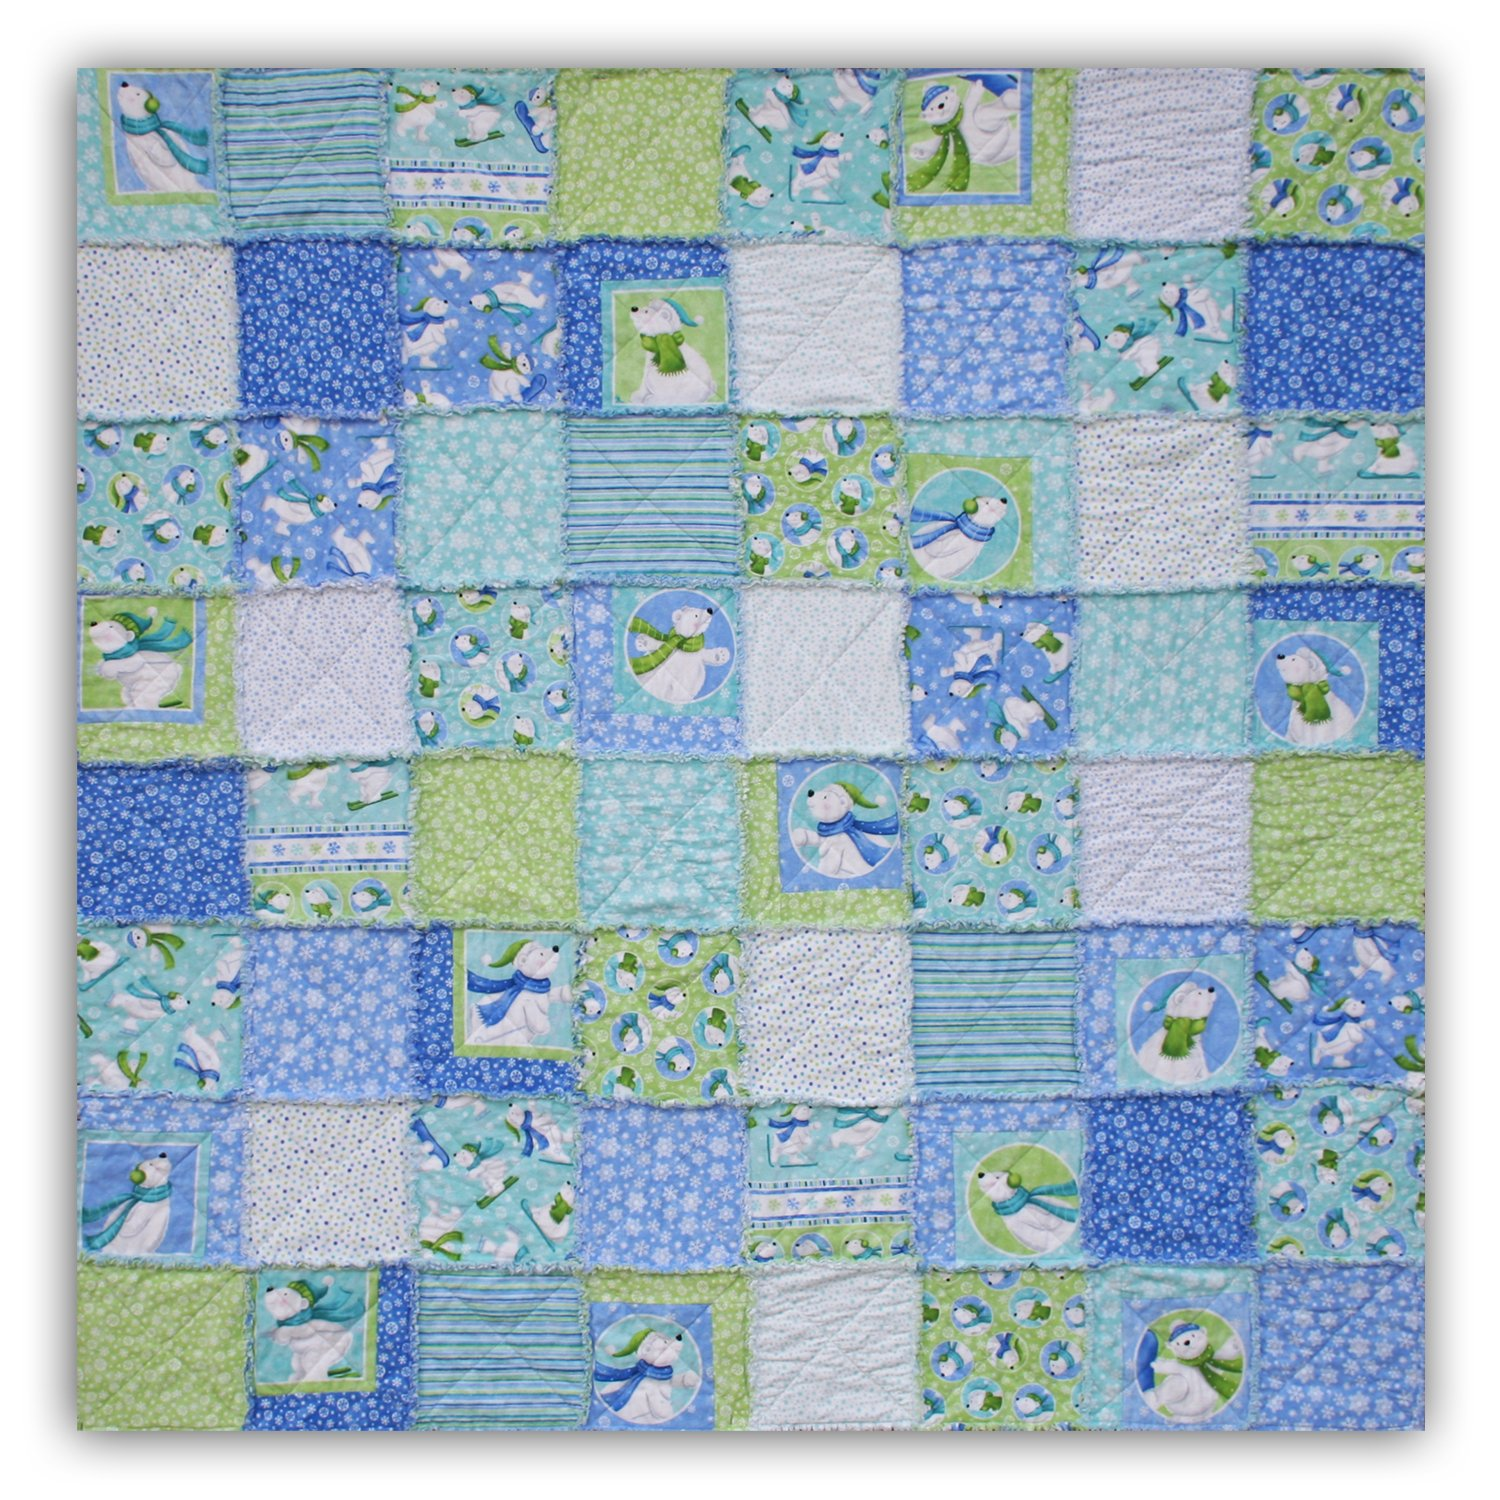 Easy Quilt Kit - Exclusive Snow Polar Bears Flannel Snuggler ''Rag'' Quilt - Black Friday Savings Now!